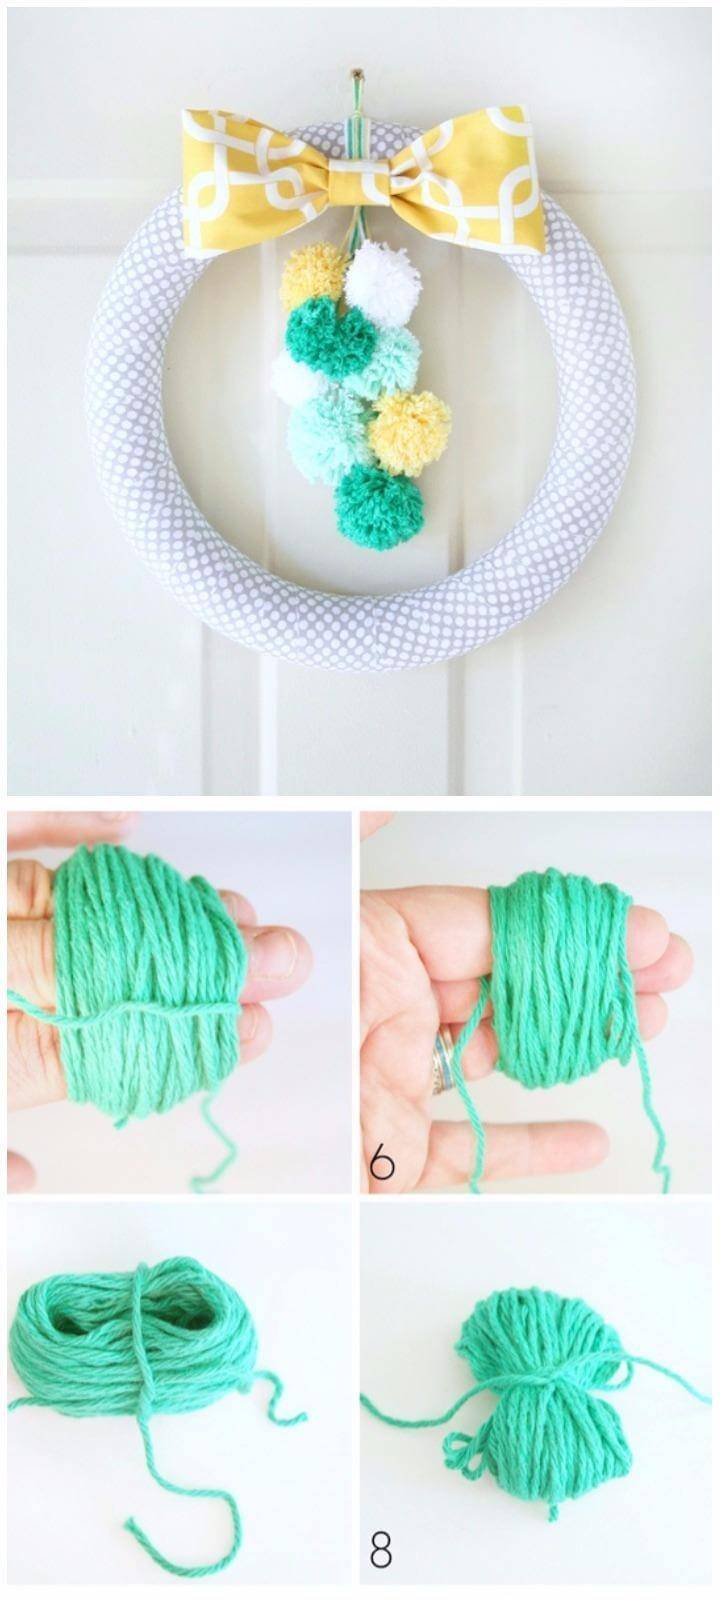 DIY Easy Pom-Pom Spring Wreath